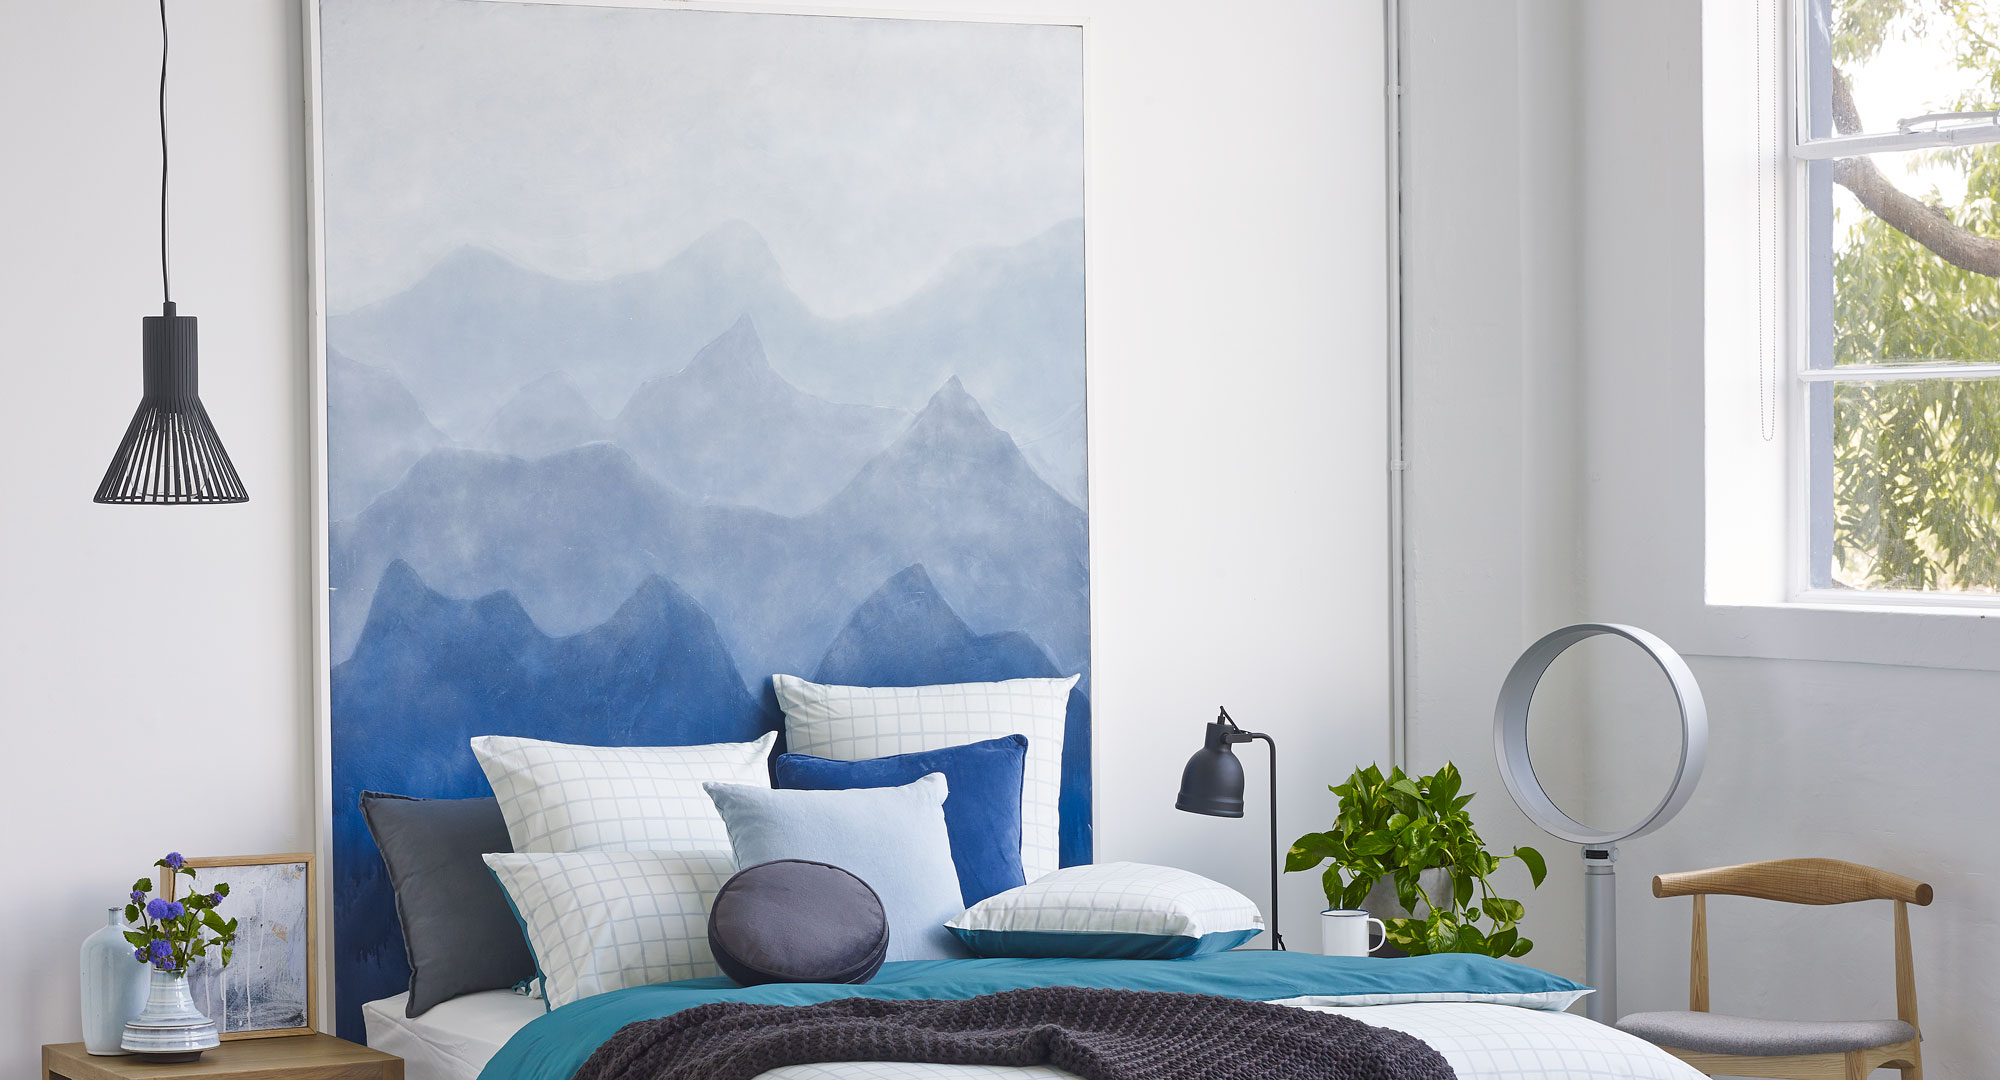 Bedroom ideas make your own mountainous bedhead mural for Create your own mural